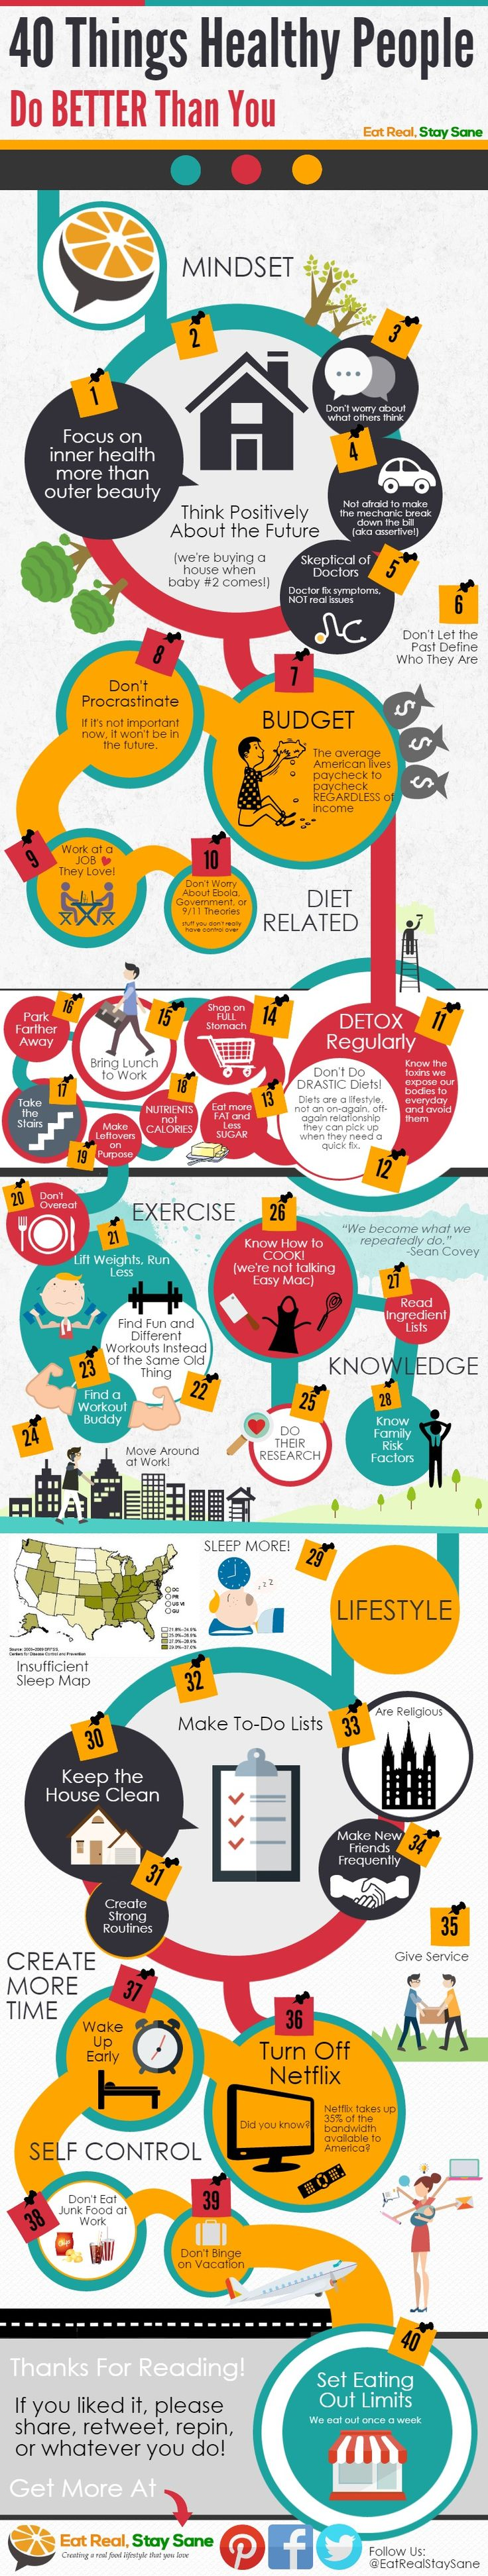 Here's a handy checklist of the habits that healthy people have. How many do you already do? How many will you start doing? @eatrealstaysane